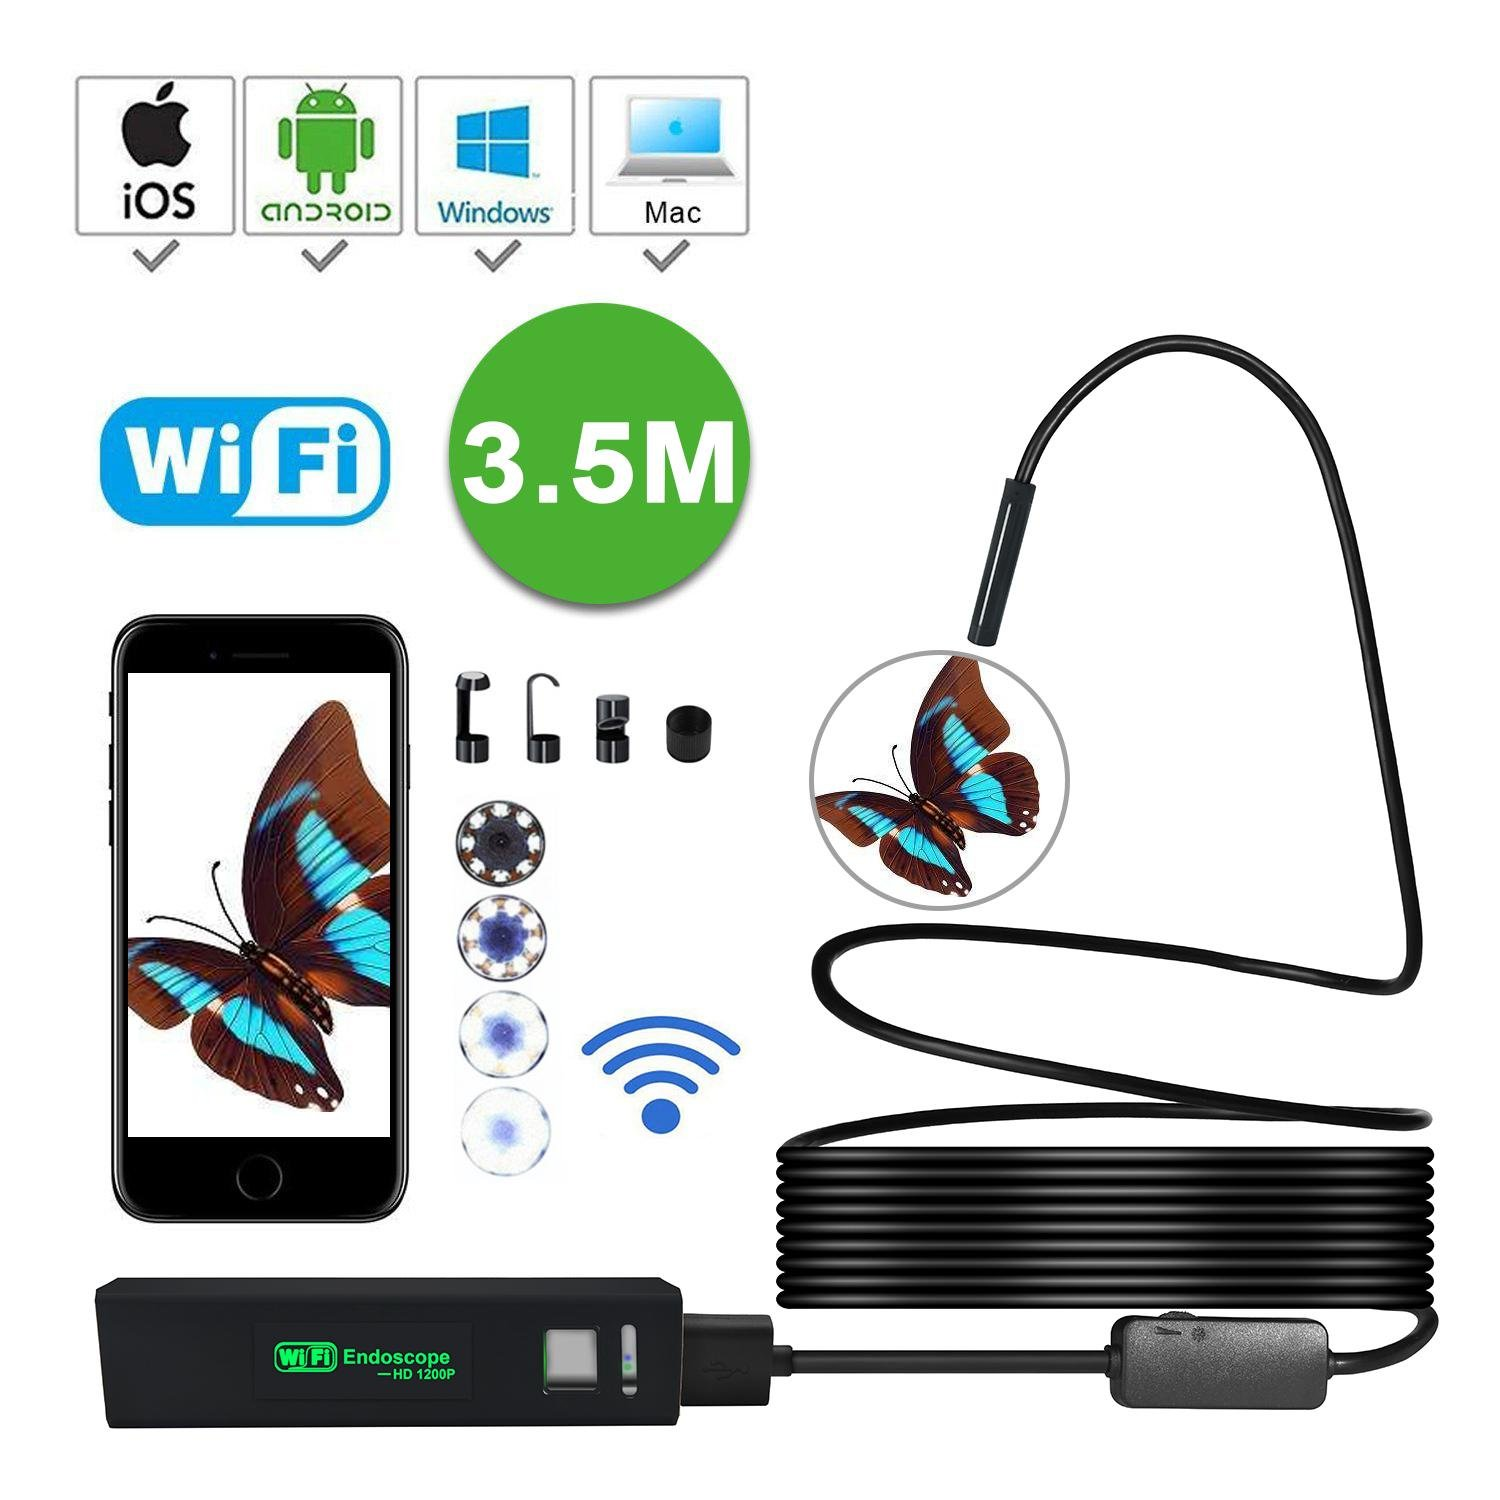 Waterproof Wireless Endoscope, KOBWA WiFi Borescope Inspection Camera 2.0 Megapixels HD 8 LED Light Snake Camera for Android and IOS Smartphone, IPhone, Samsung, Tablet, PC 6025779747431